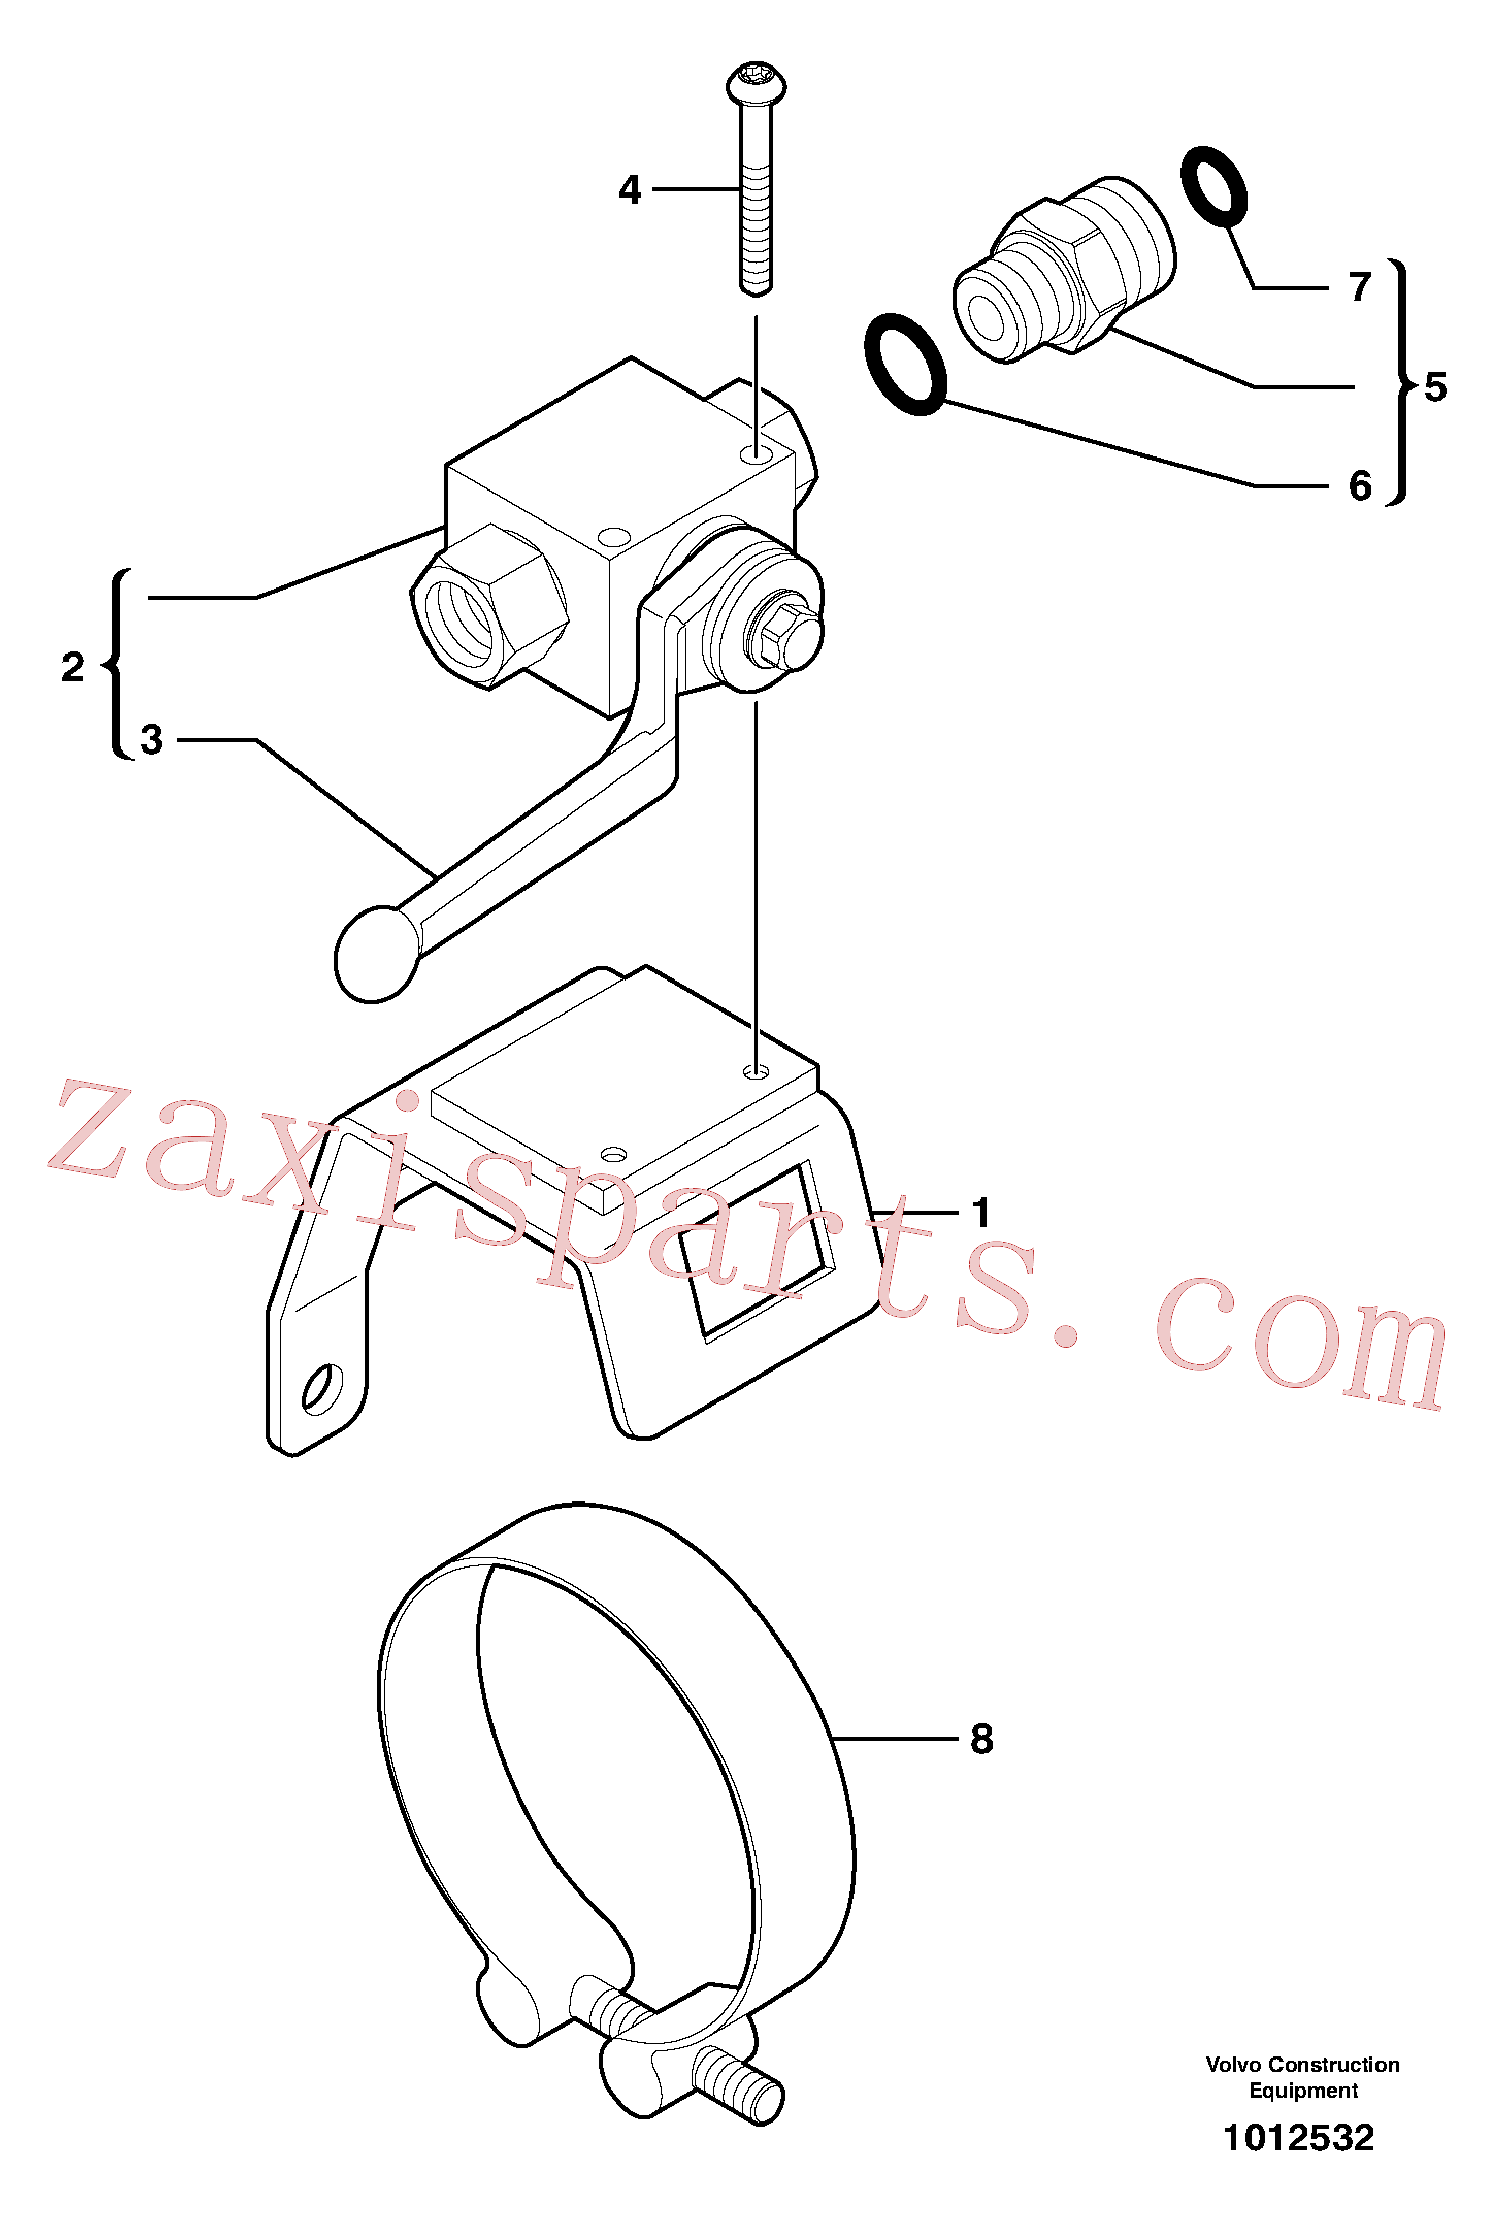 PJ4780009 for Volvo Two-way valve(1012532 assembly)